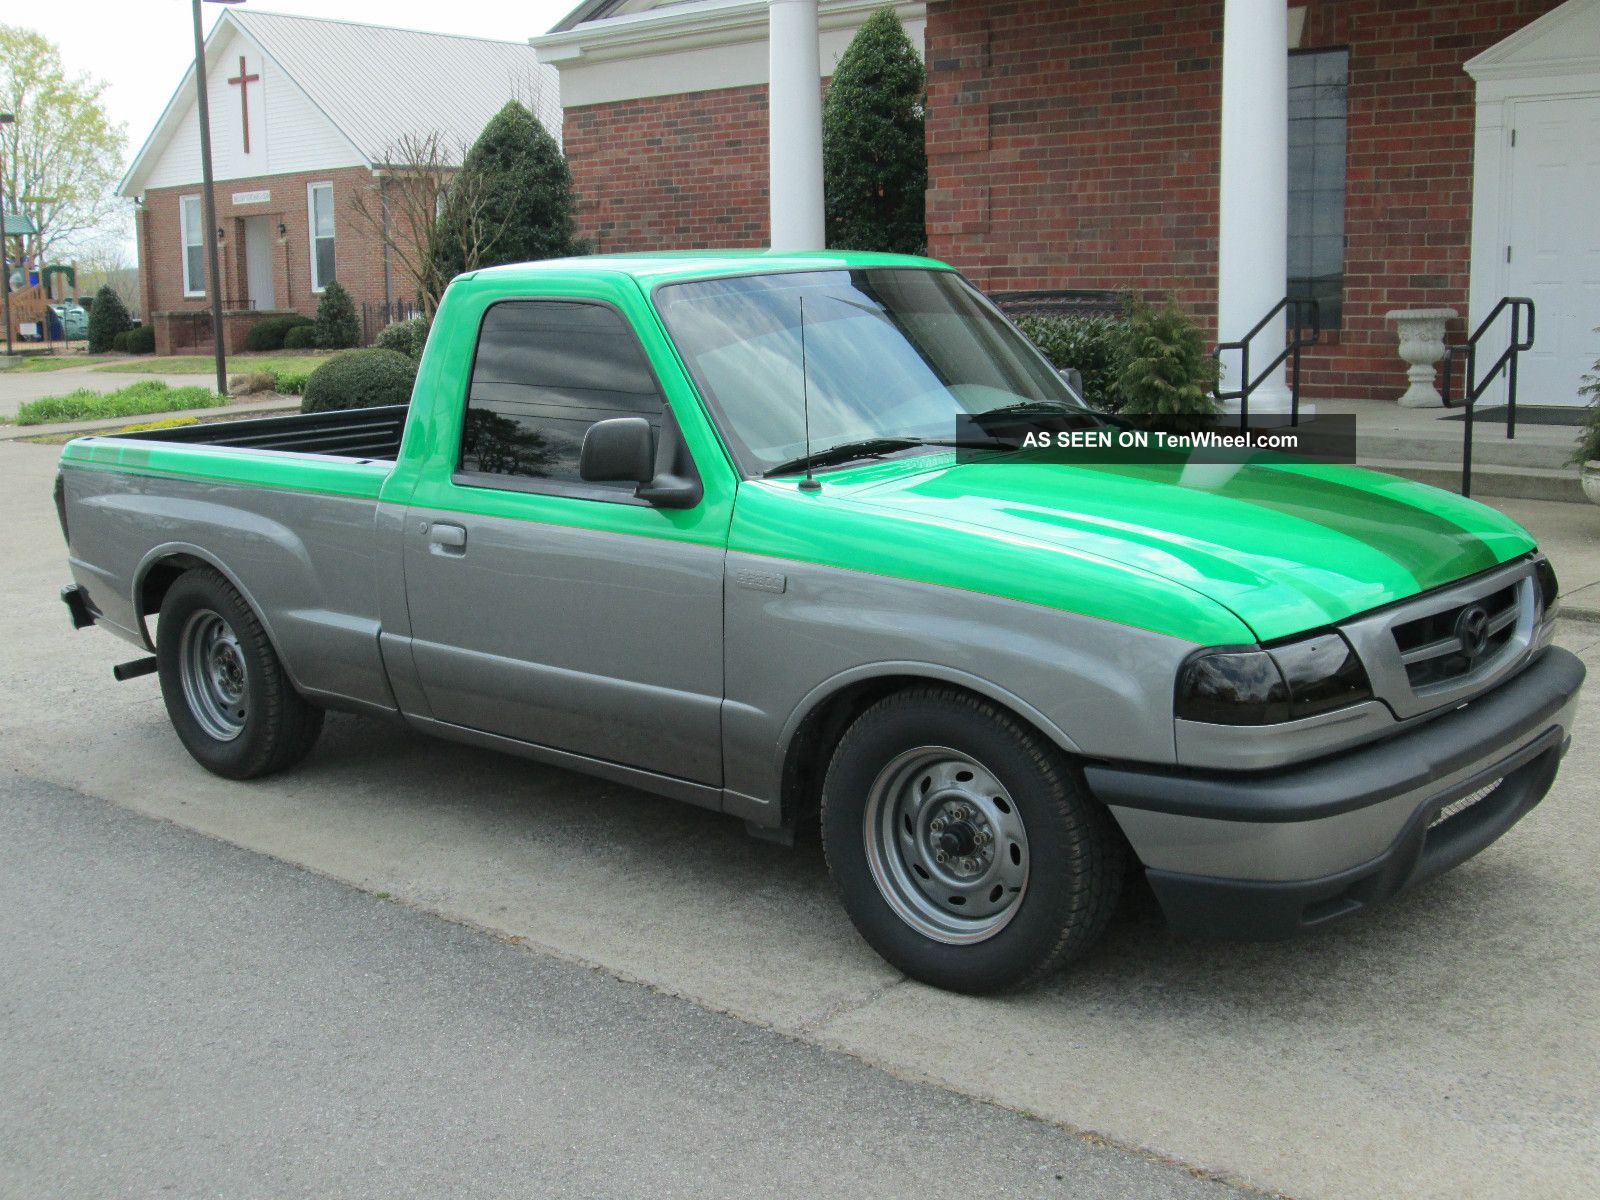 Lowered 2002 Mazda B2300 Complete Bolt On 7psi Turbo Kit Included 1994 Gmc Safari Wiring Harness